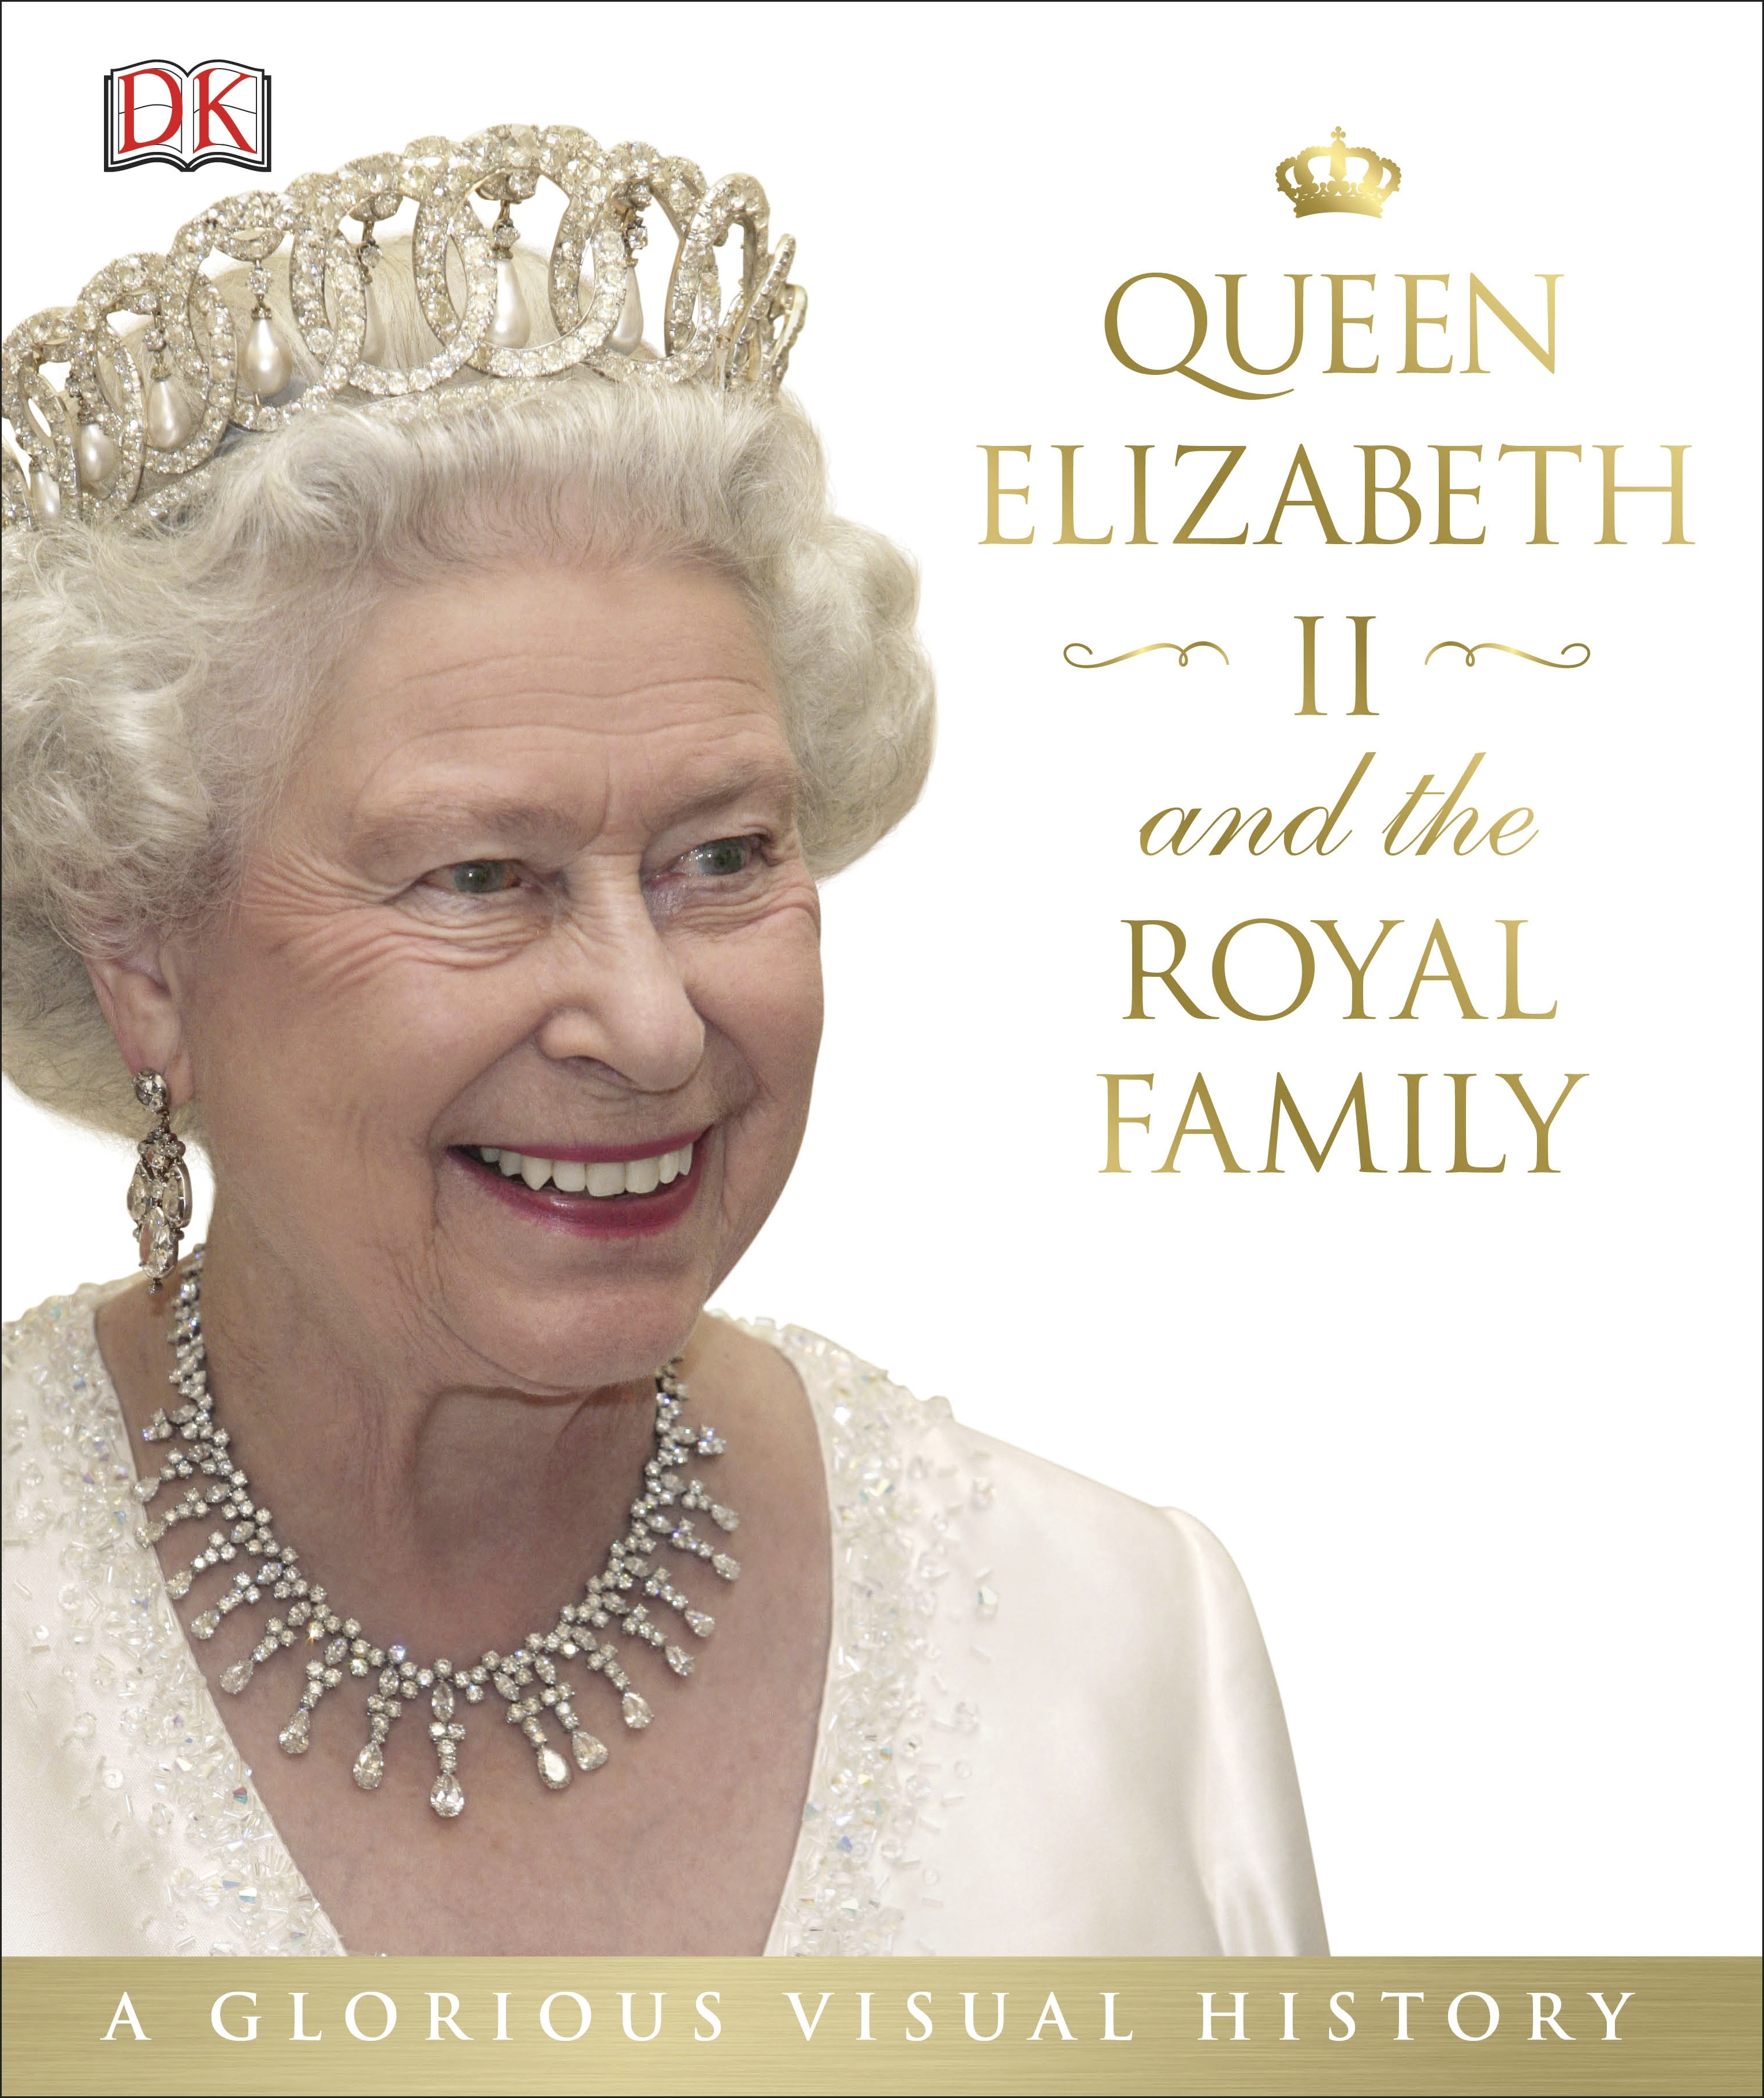 a biography of queen elizabeth ii About her majesty the queen  the duke of cambridge wrote fondly of his grandmother in the preface to 'elizabeth ii: the steadfast', a biography of the queen.